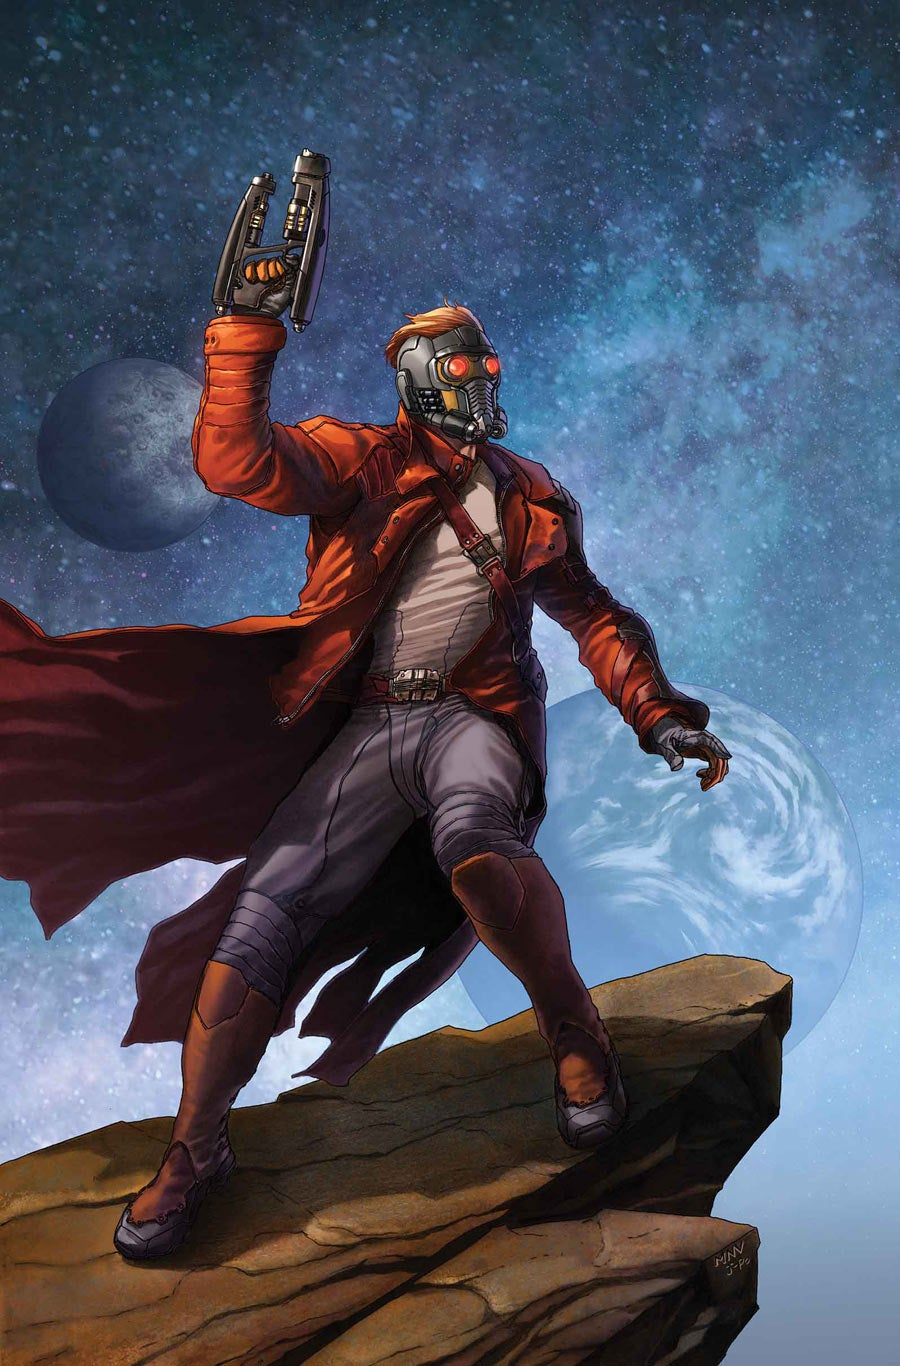 Guardians of the Galaxy's Star-Lord Gets His Own Comic Book